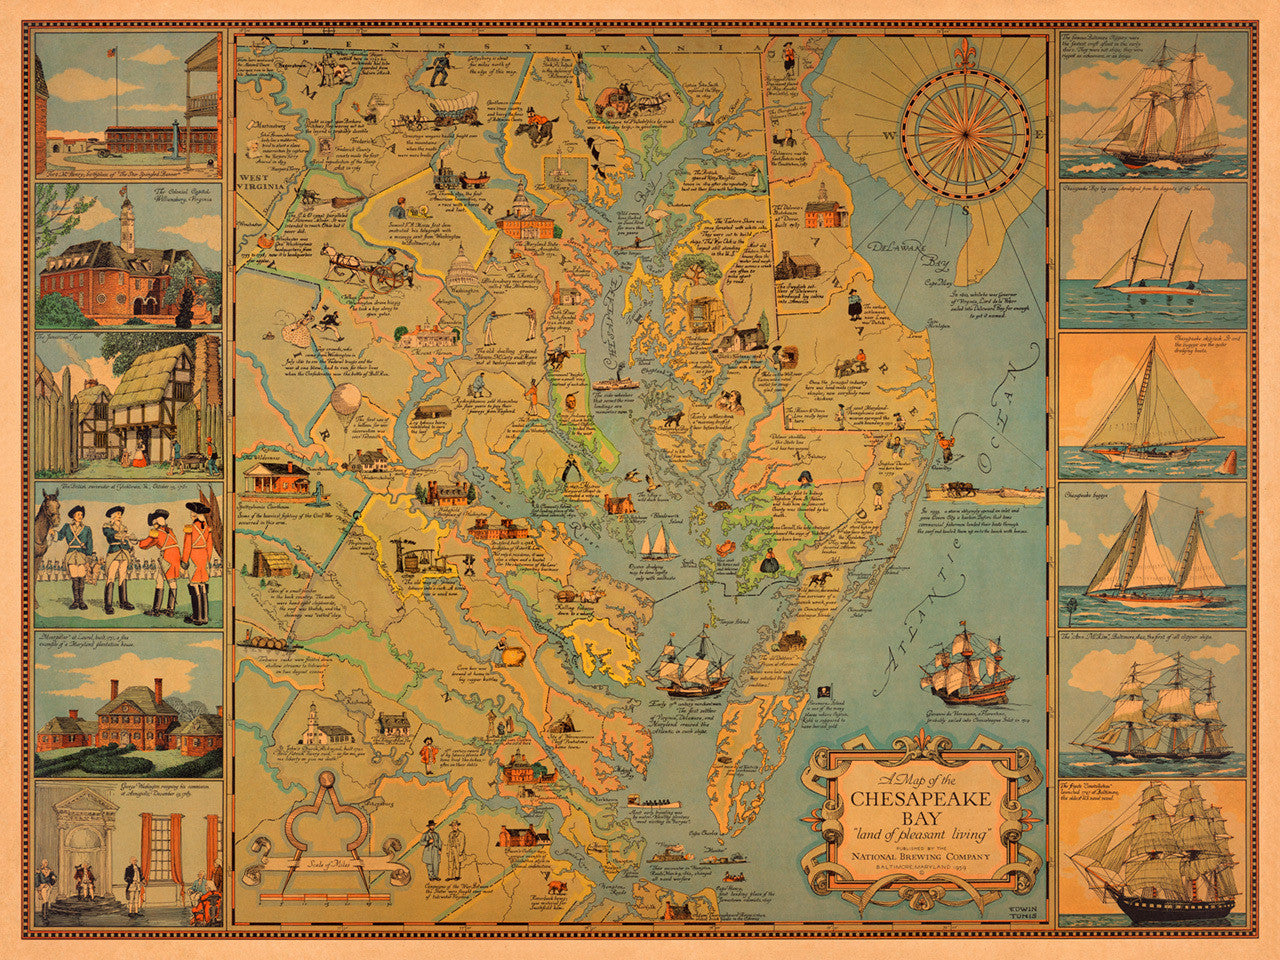 Chesapeake Bay Pictorial Historical Map Battlemaps Us Explore the chesapeake bay including maps of the rivers and access points, plus learn about the cities and towns that surround the bay rachel cooper is a travel writer who has lived in the washington, d.c., area for more than 25 years. chesapeake bay pictorial historical